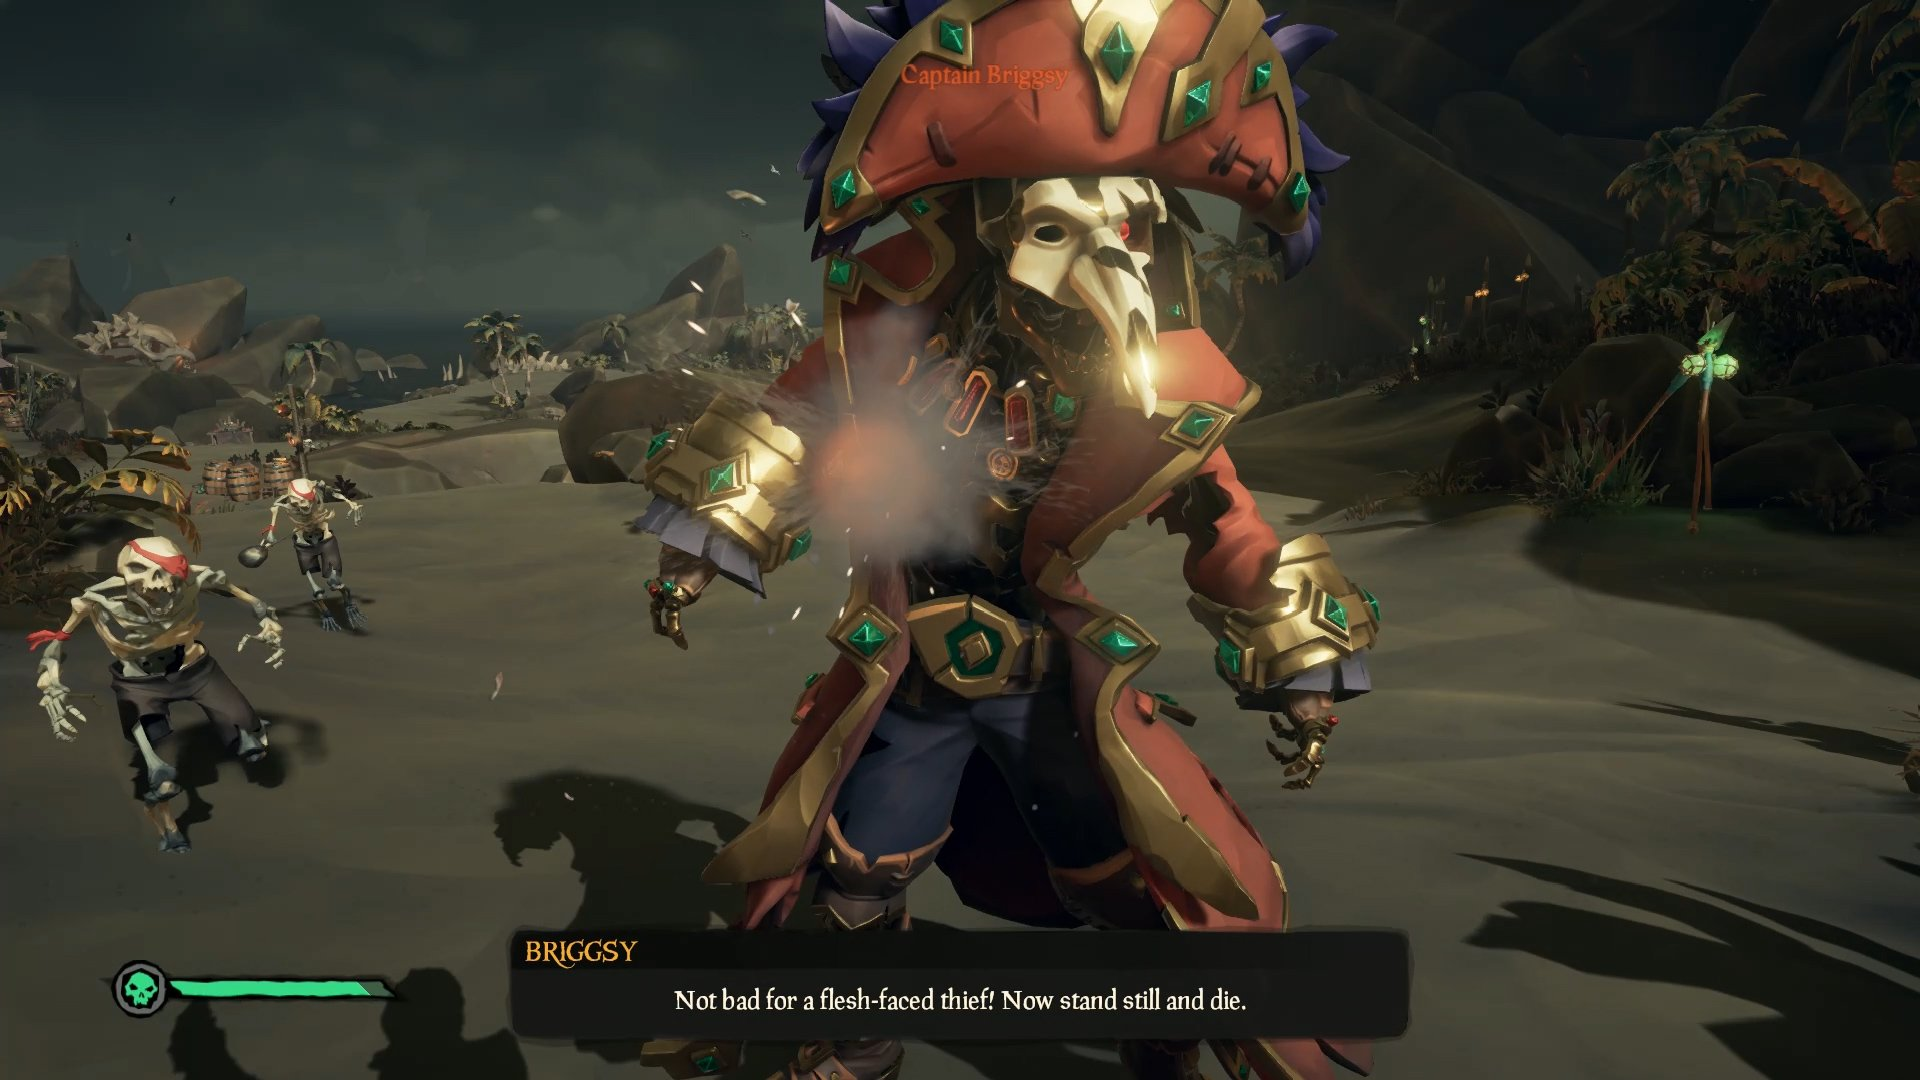 Sea of Thieves Briggsy